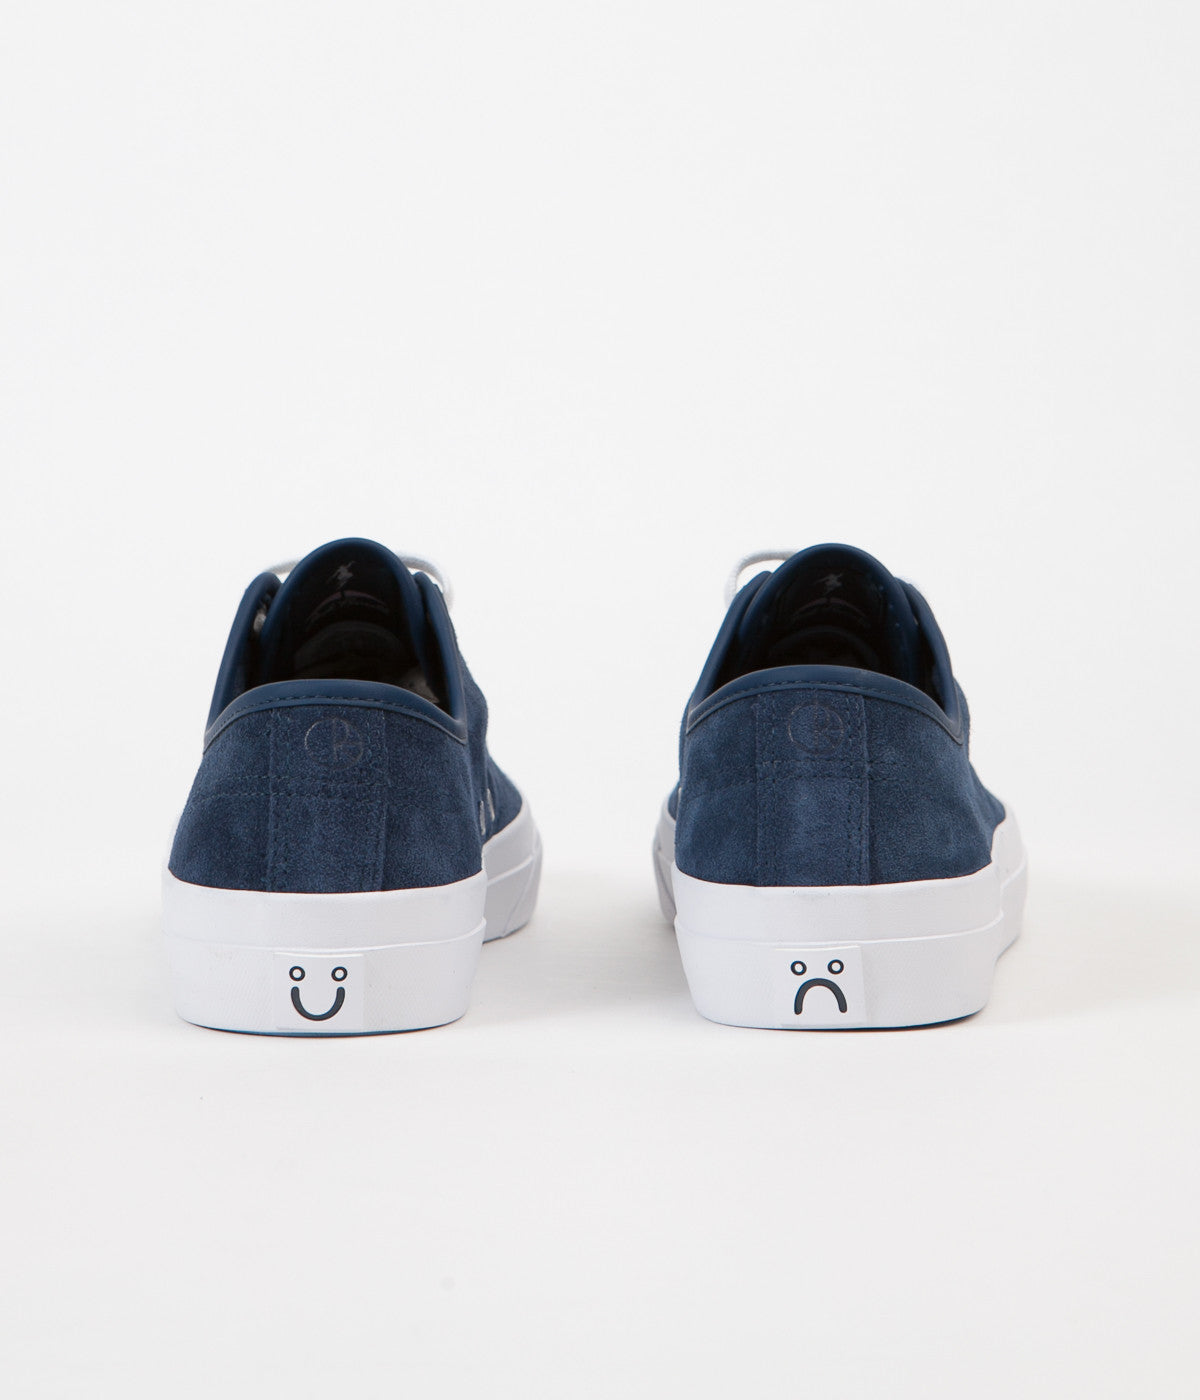 7d35fd66f974 ... Converse x Polar Jack Purcell JP Pro Ox Shoes - Navy   Navy   White ...